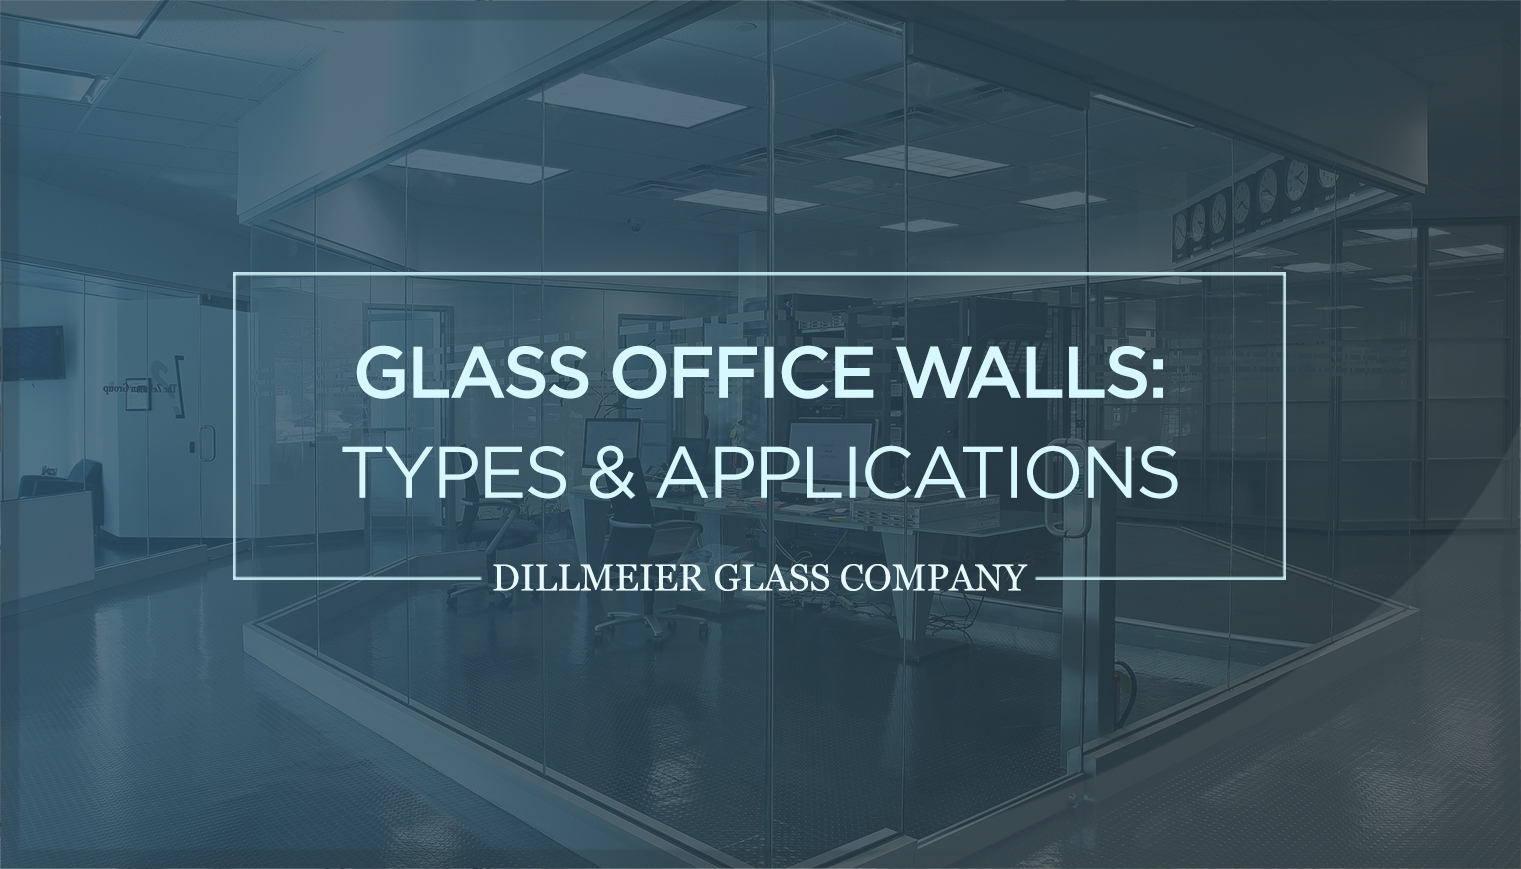 Glass Office Walls: Types & Applications